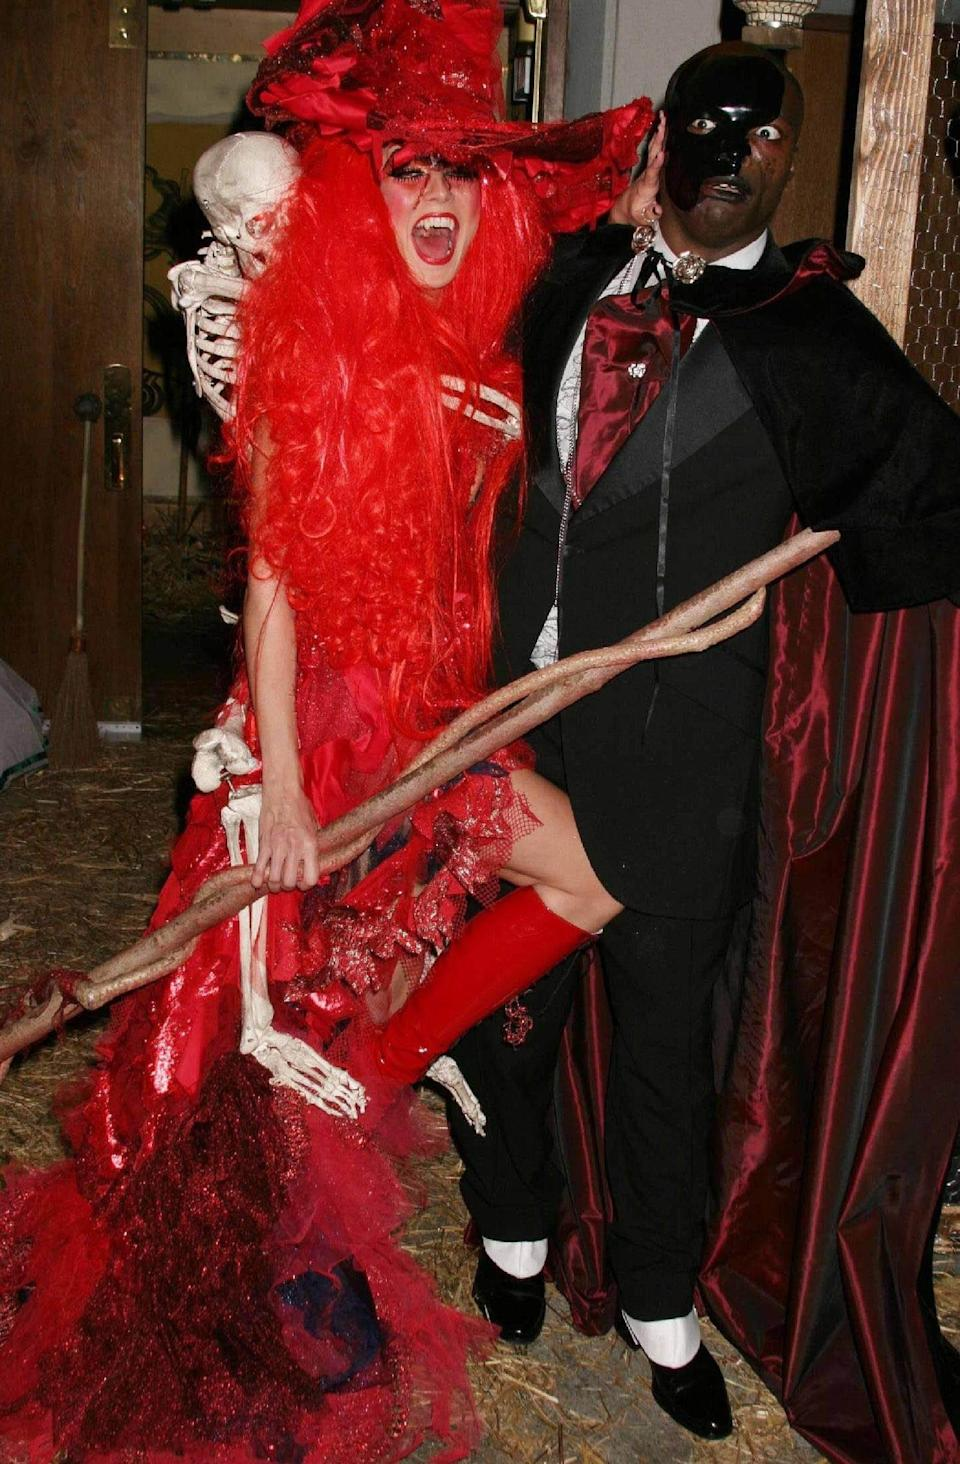 Heidi Klum, pictured with Seal, dresses as a witch for her 2004 Halloween party. - Credit: PNP/WENN/Newscom/MEGA